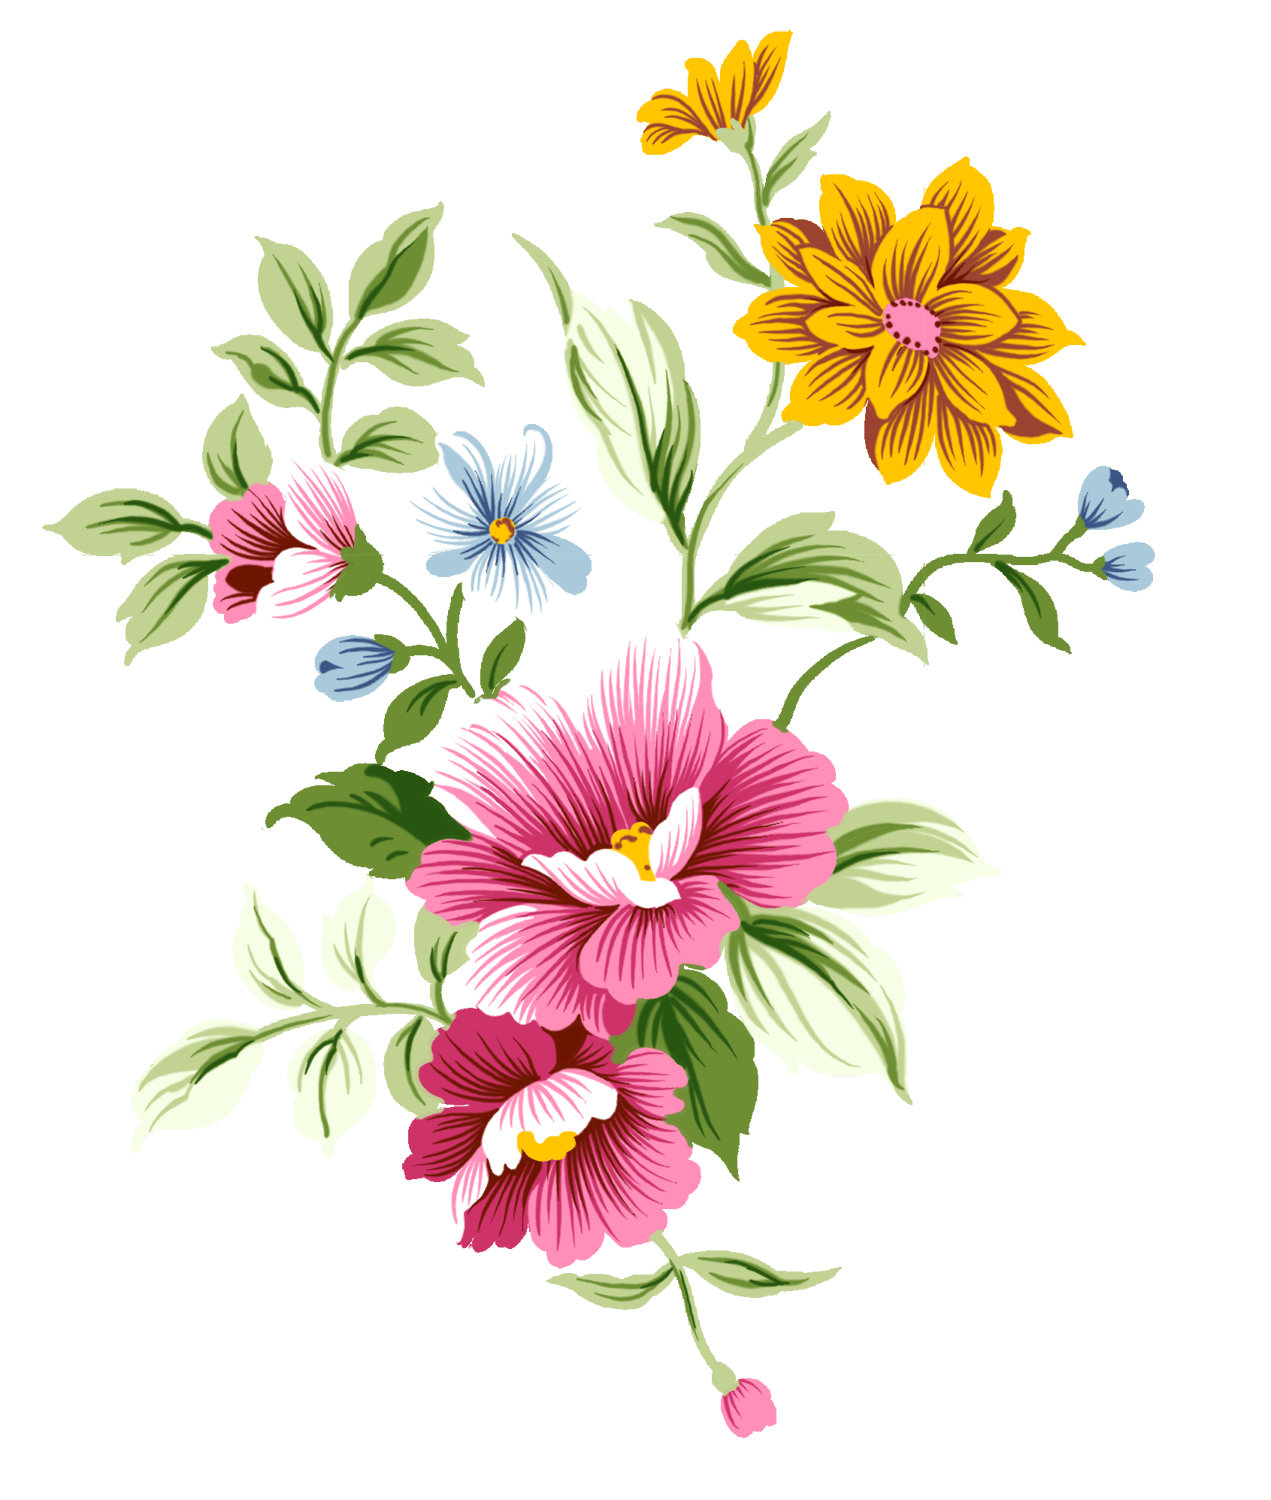 Thanks clipart bouquet. Art nouveau flowers transparent